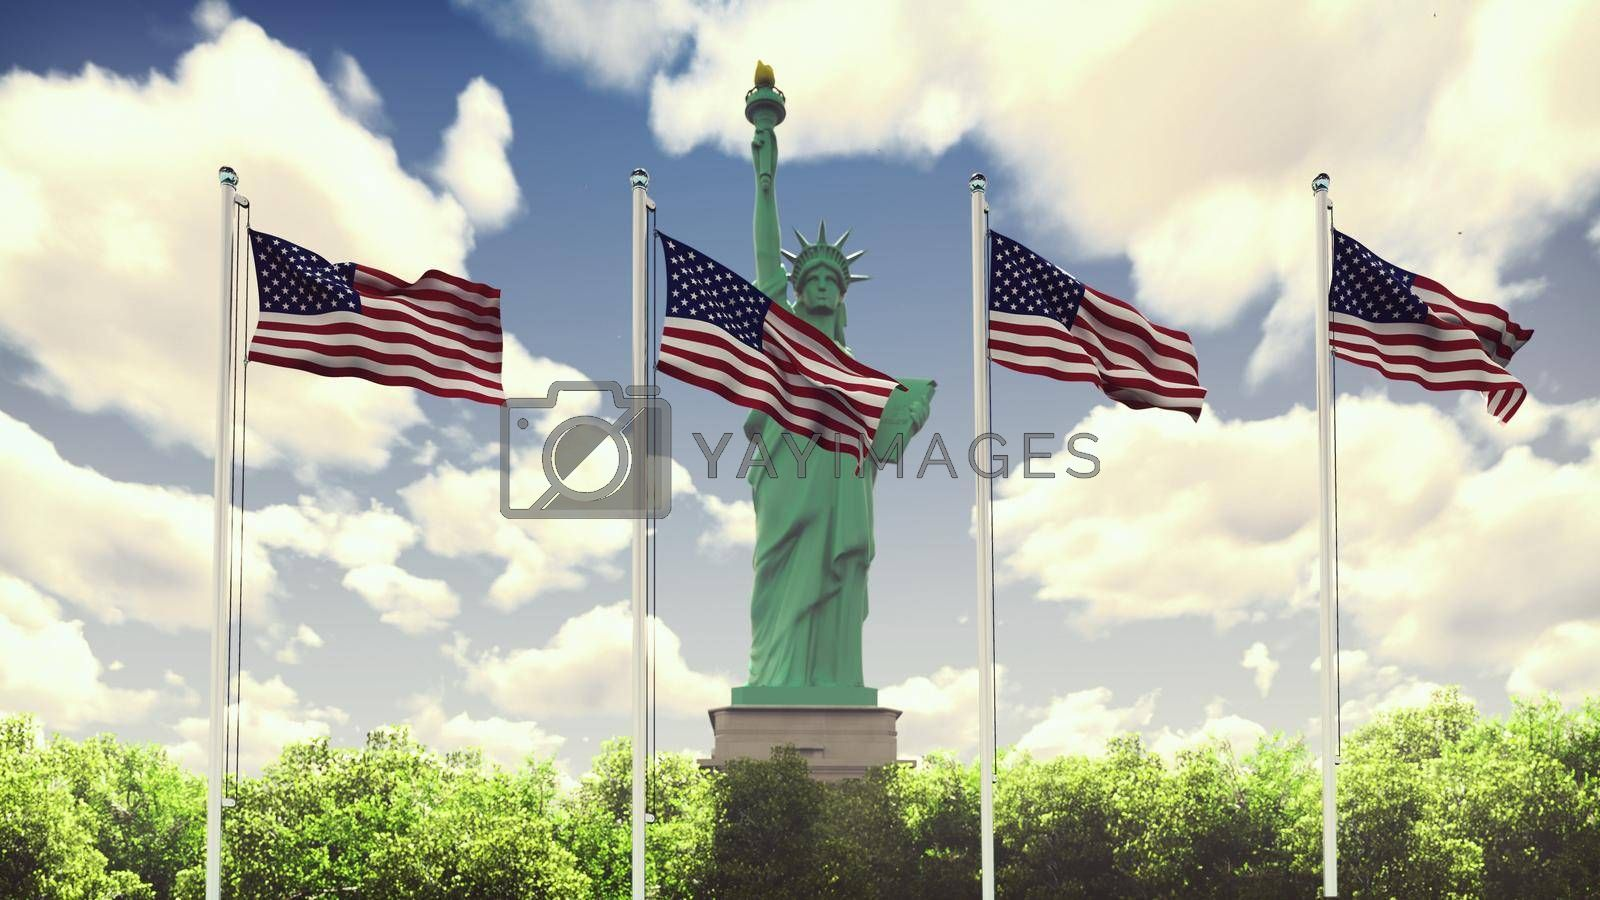 The American flags flutters in the wind on a Sunny day against the blue sky and the Statue of Liberty. The symbol of America and the American national holiday.